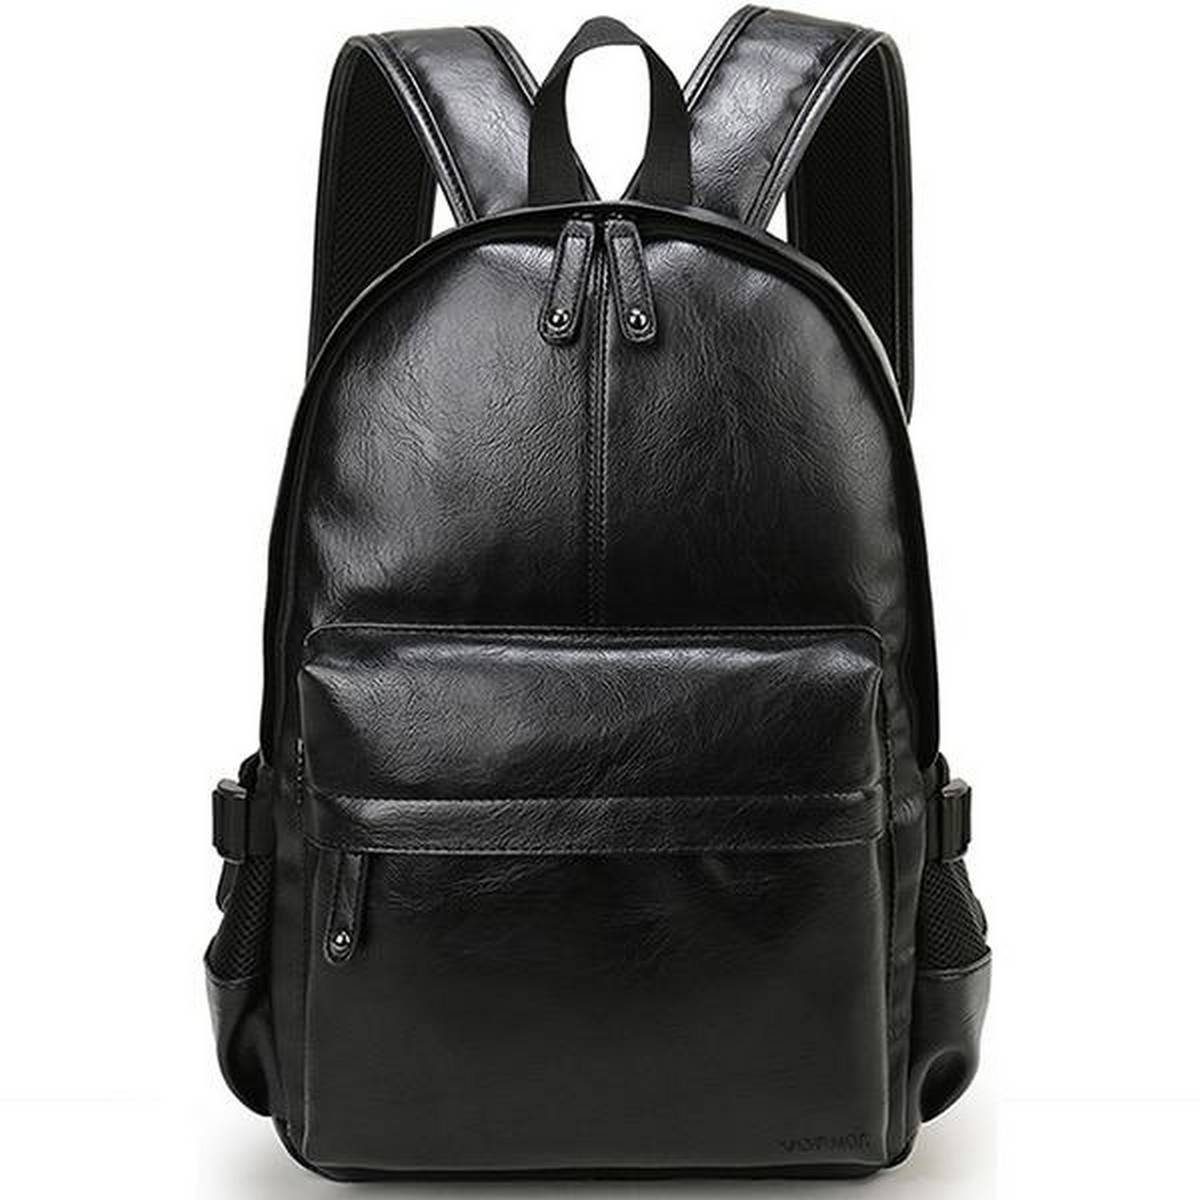 Pu Leather College Bag for Boys & laptop Backpack (Black & Coffee color )